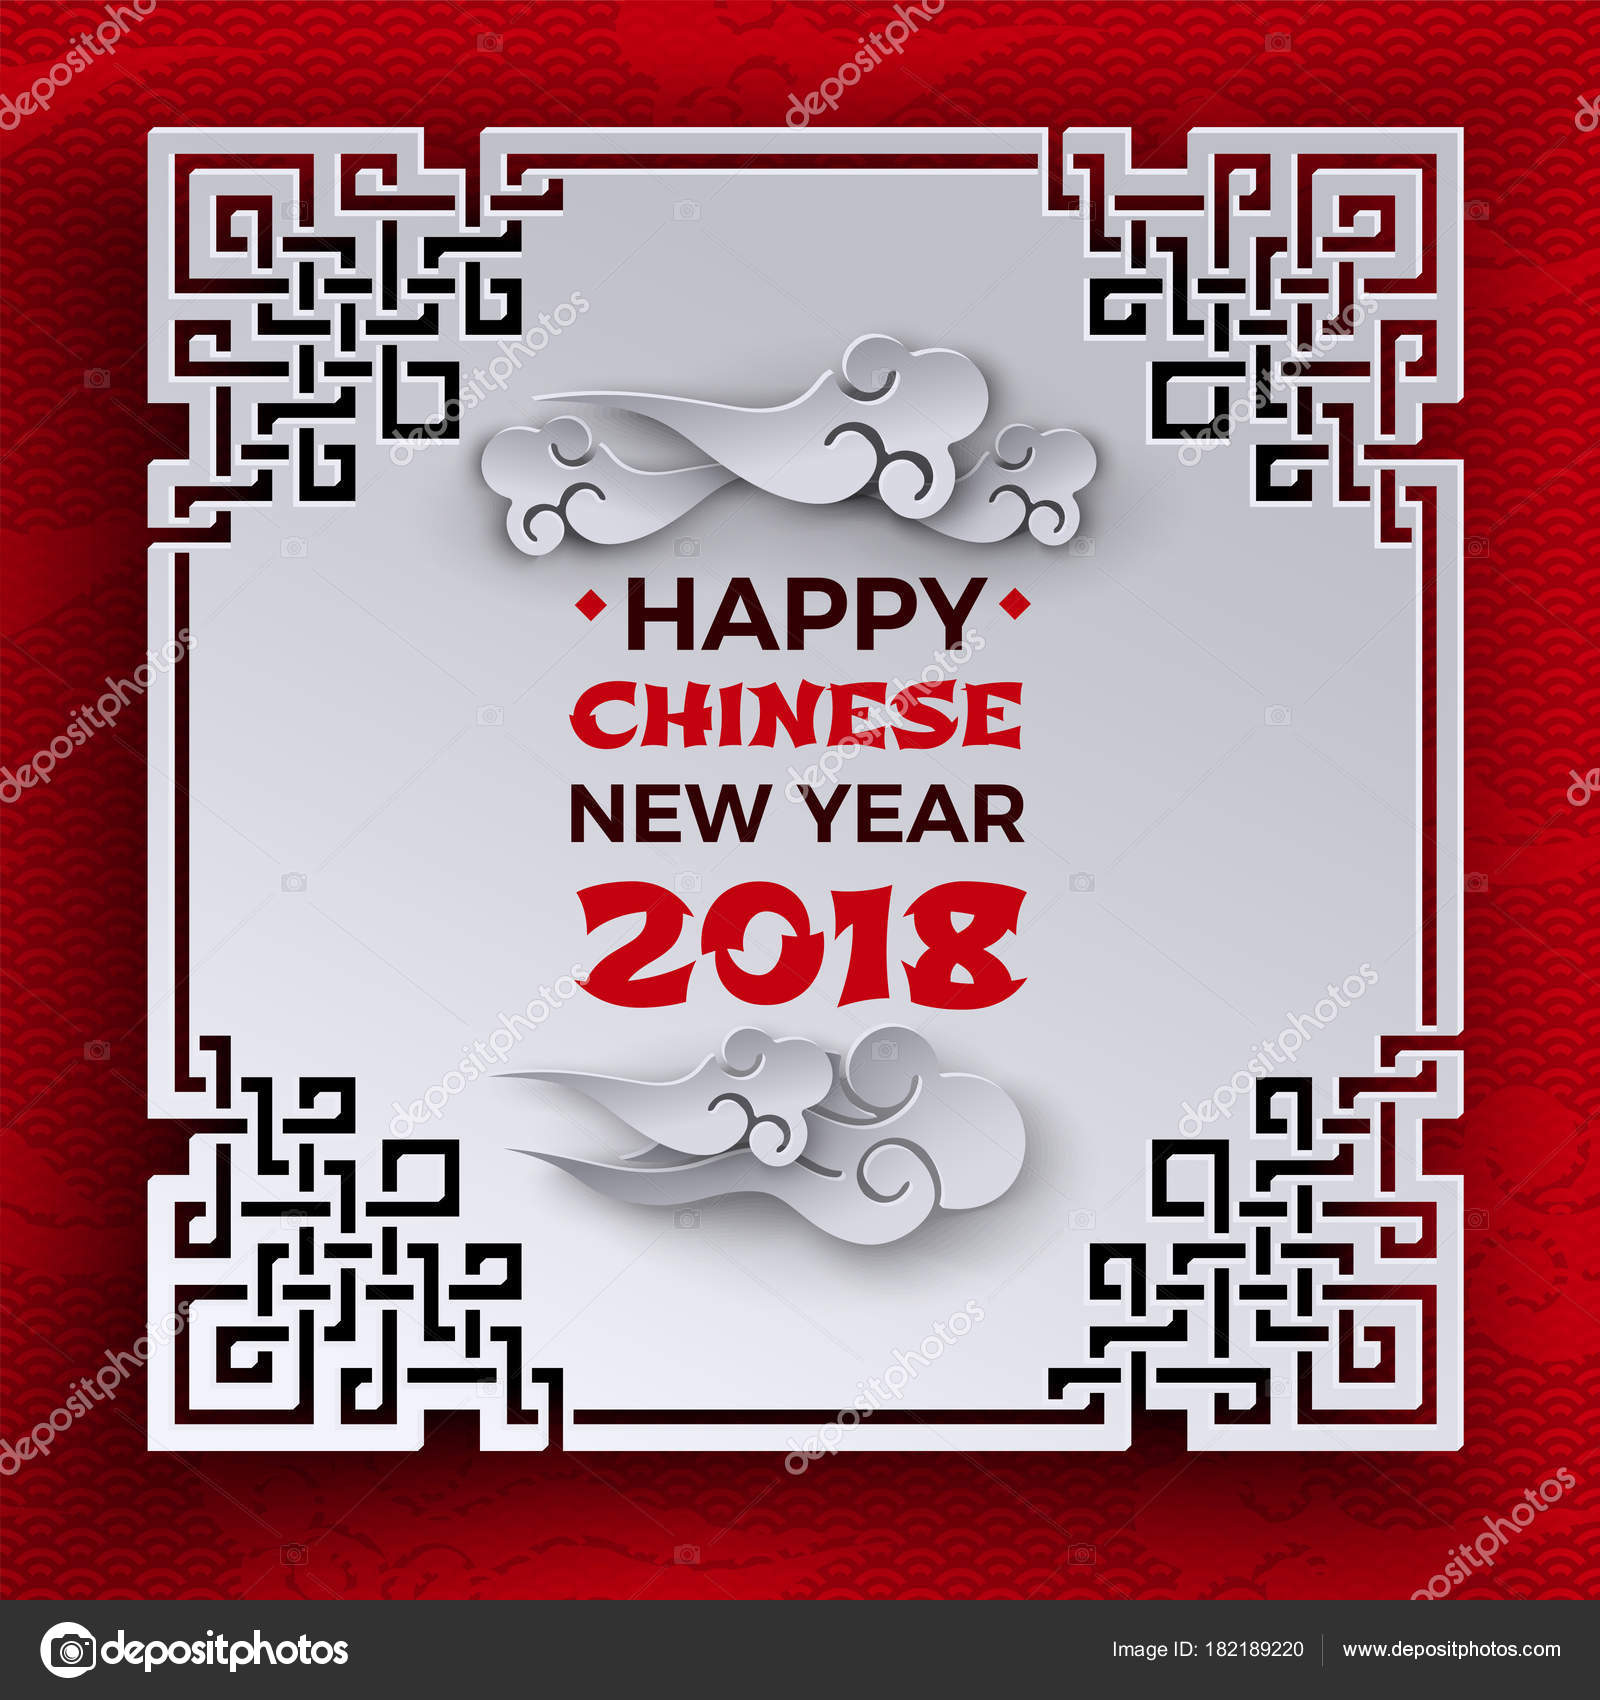 chinese new year 2018 banner text on white tracery ornate frame paper clouds on red pattern background with oriental cloud design element for greeting